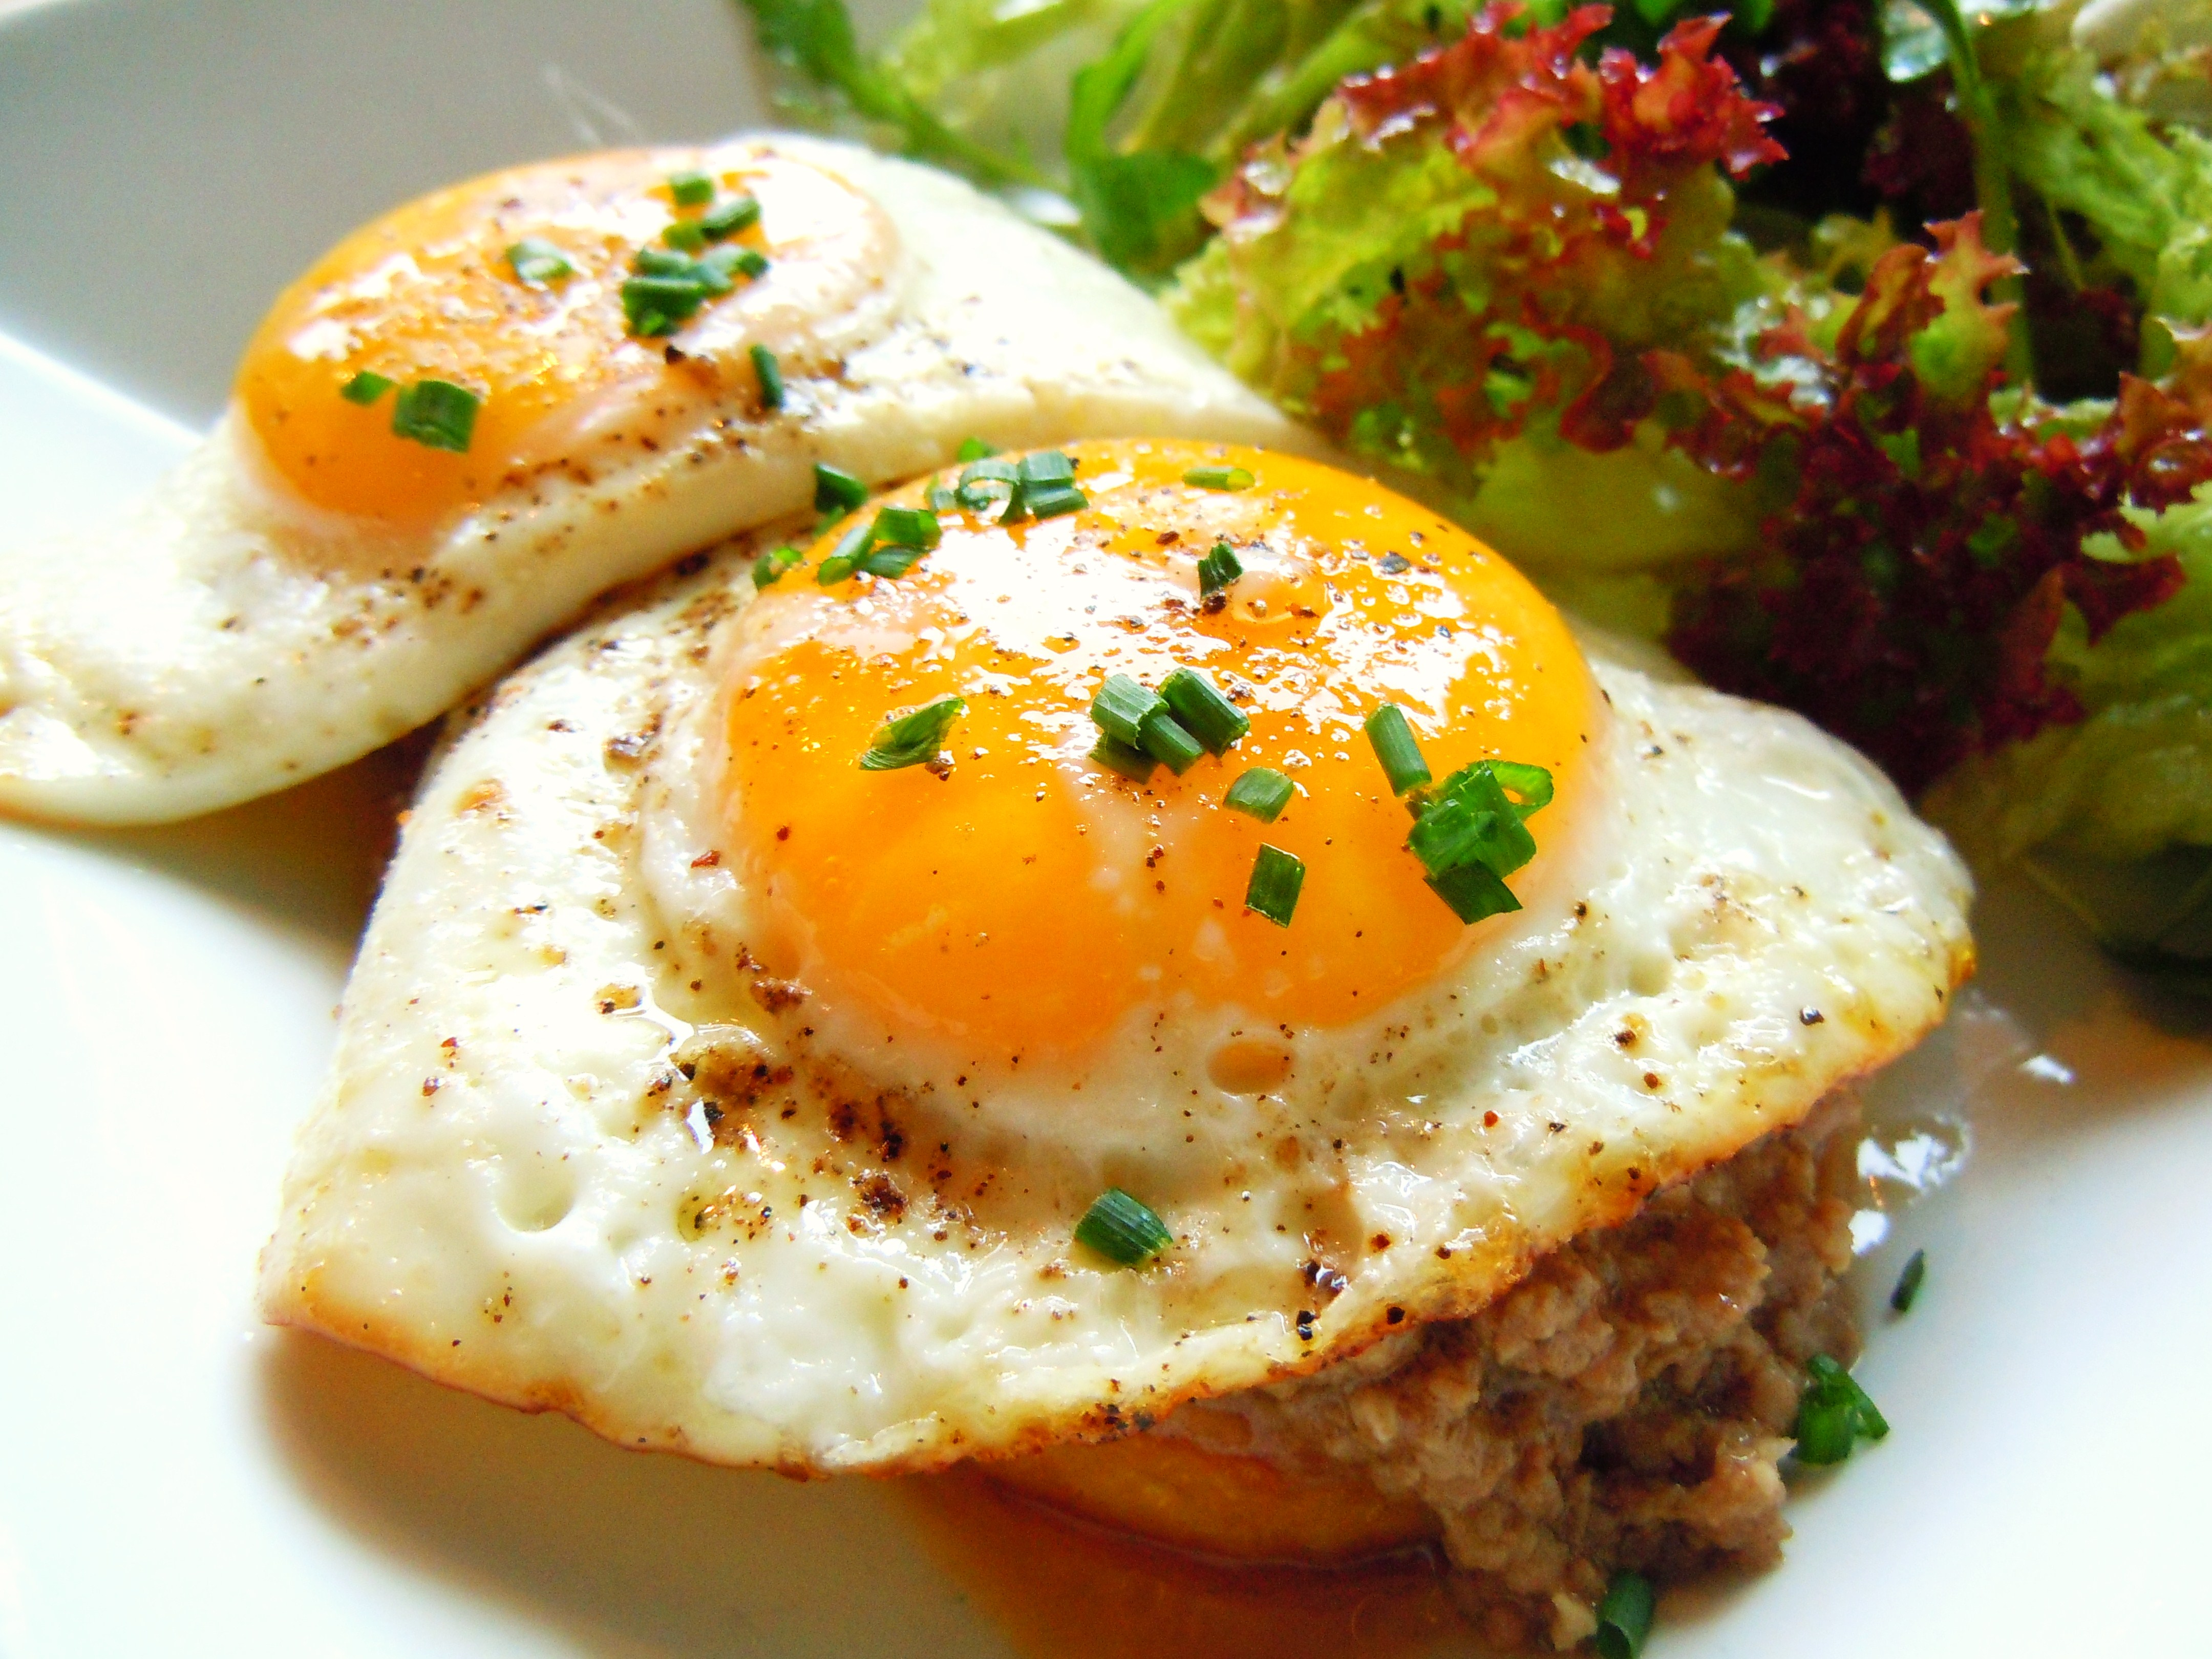 Fried Egg Breakfast